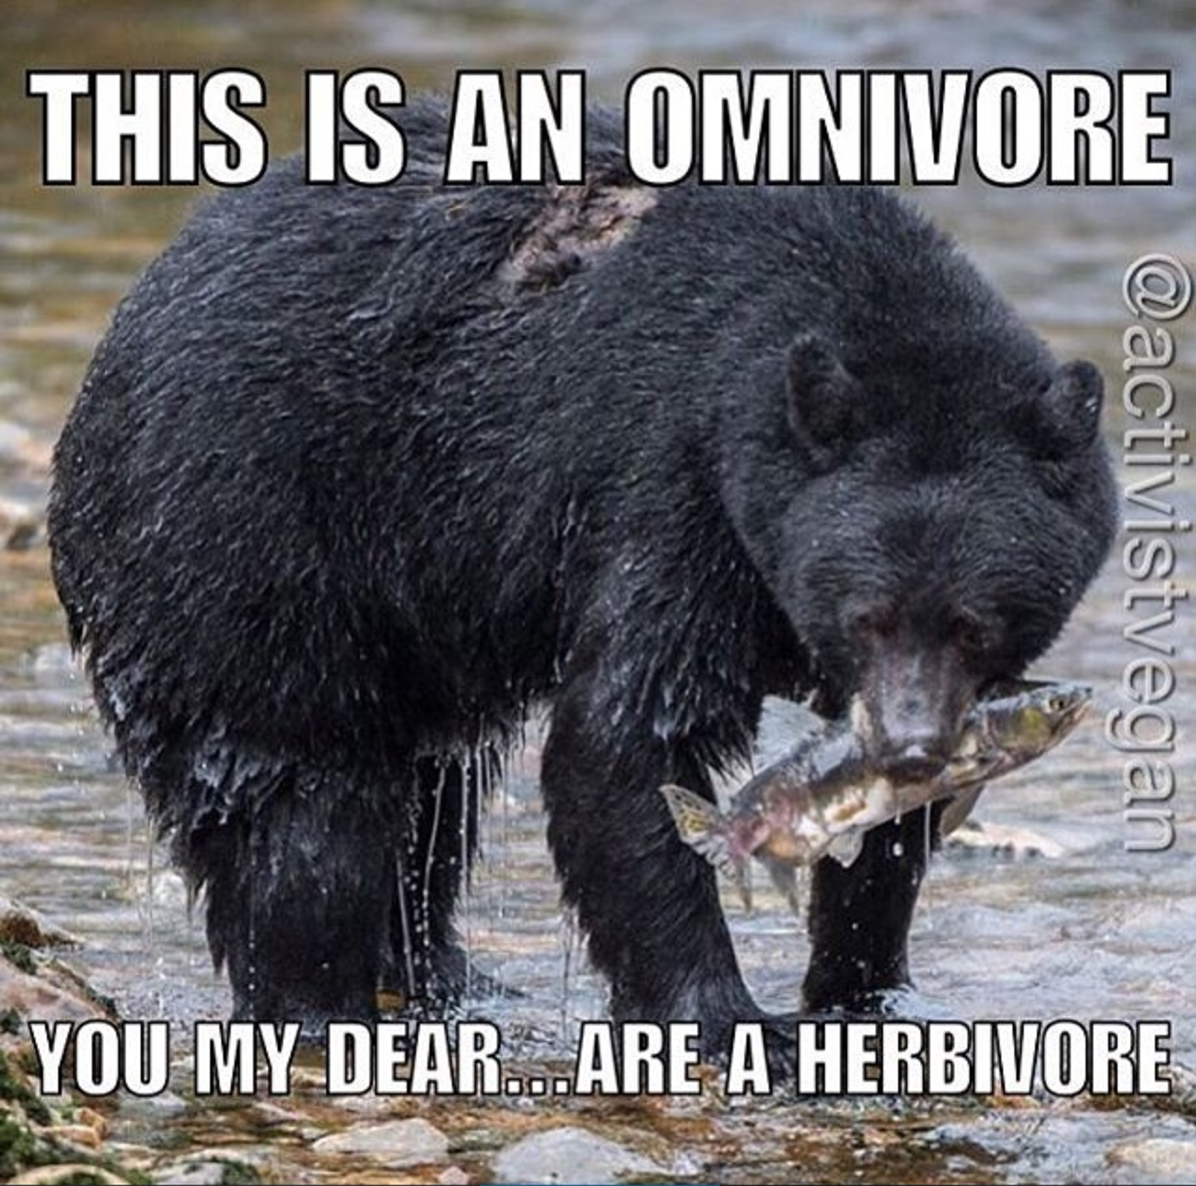 What Are Some Characteristics Of Herbivores